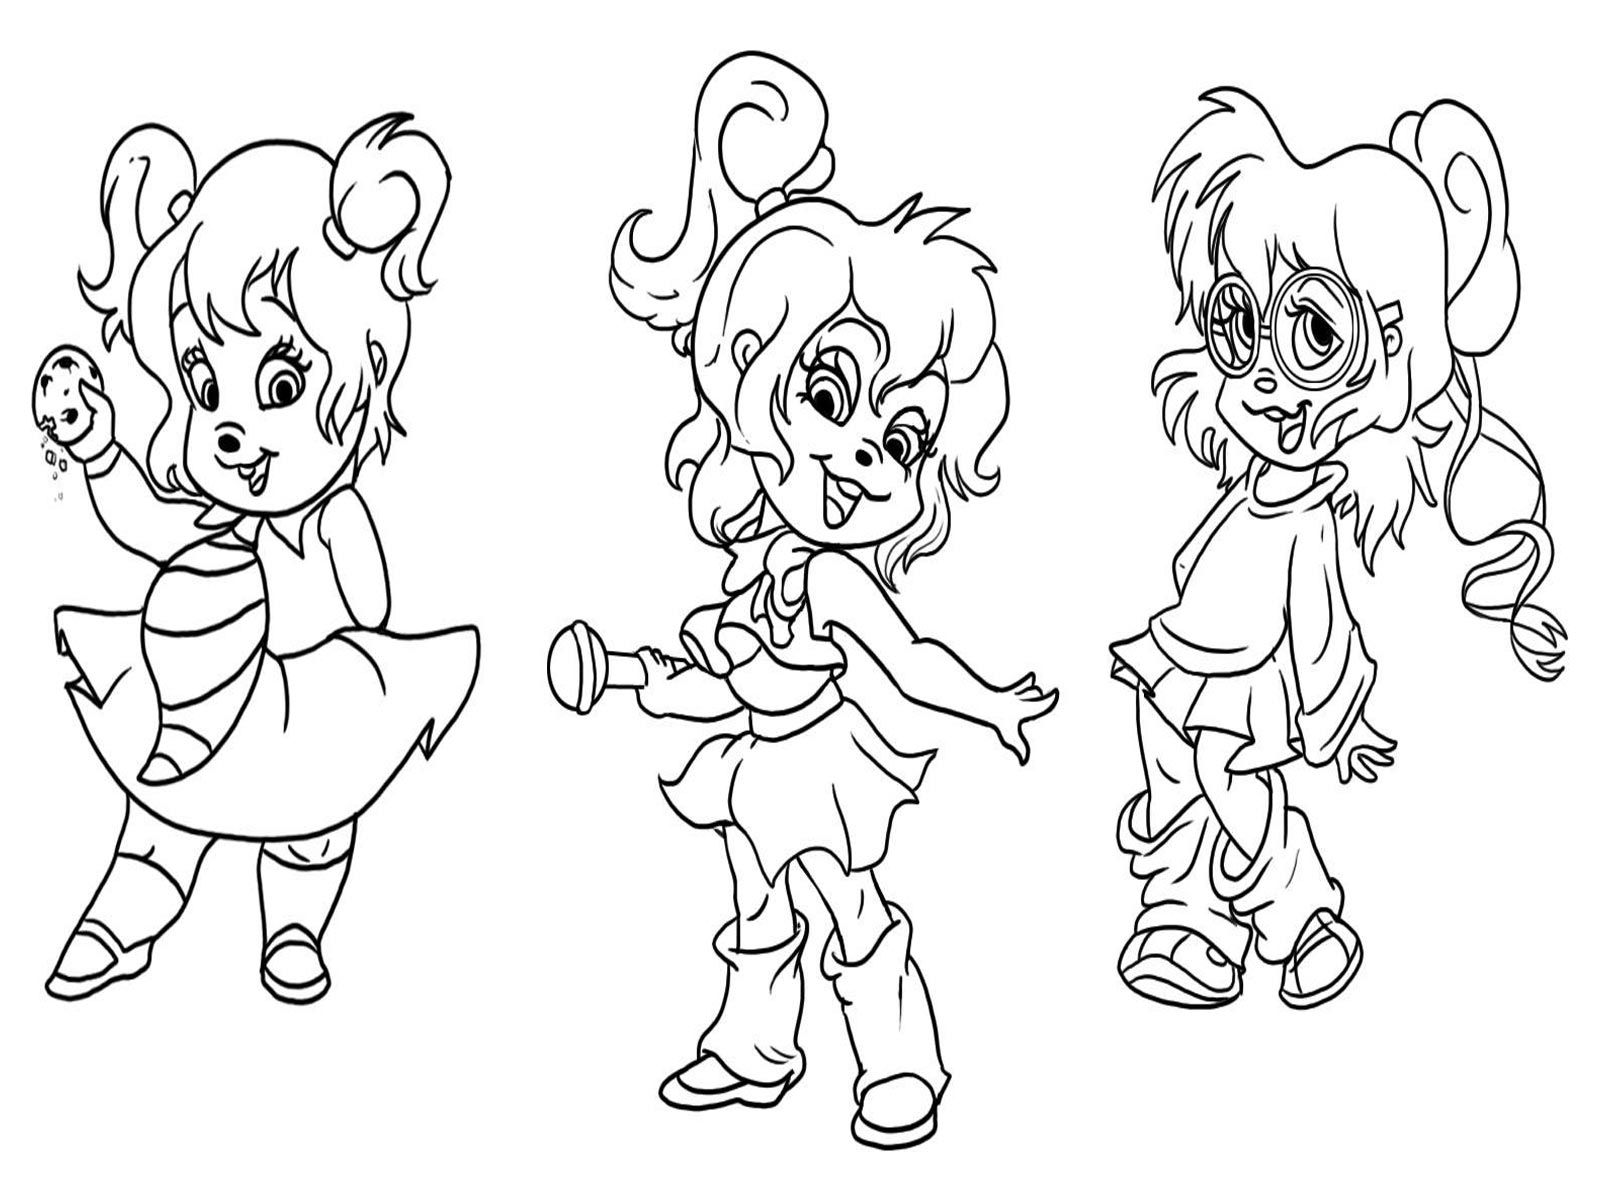 alvin and the chipmunks coloring pages free printable coloring pages alvin and the chipmunks the and coloring chipmunks pages alvin